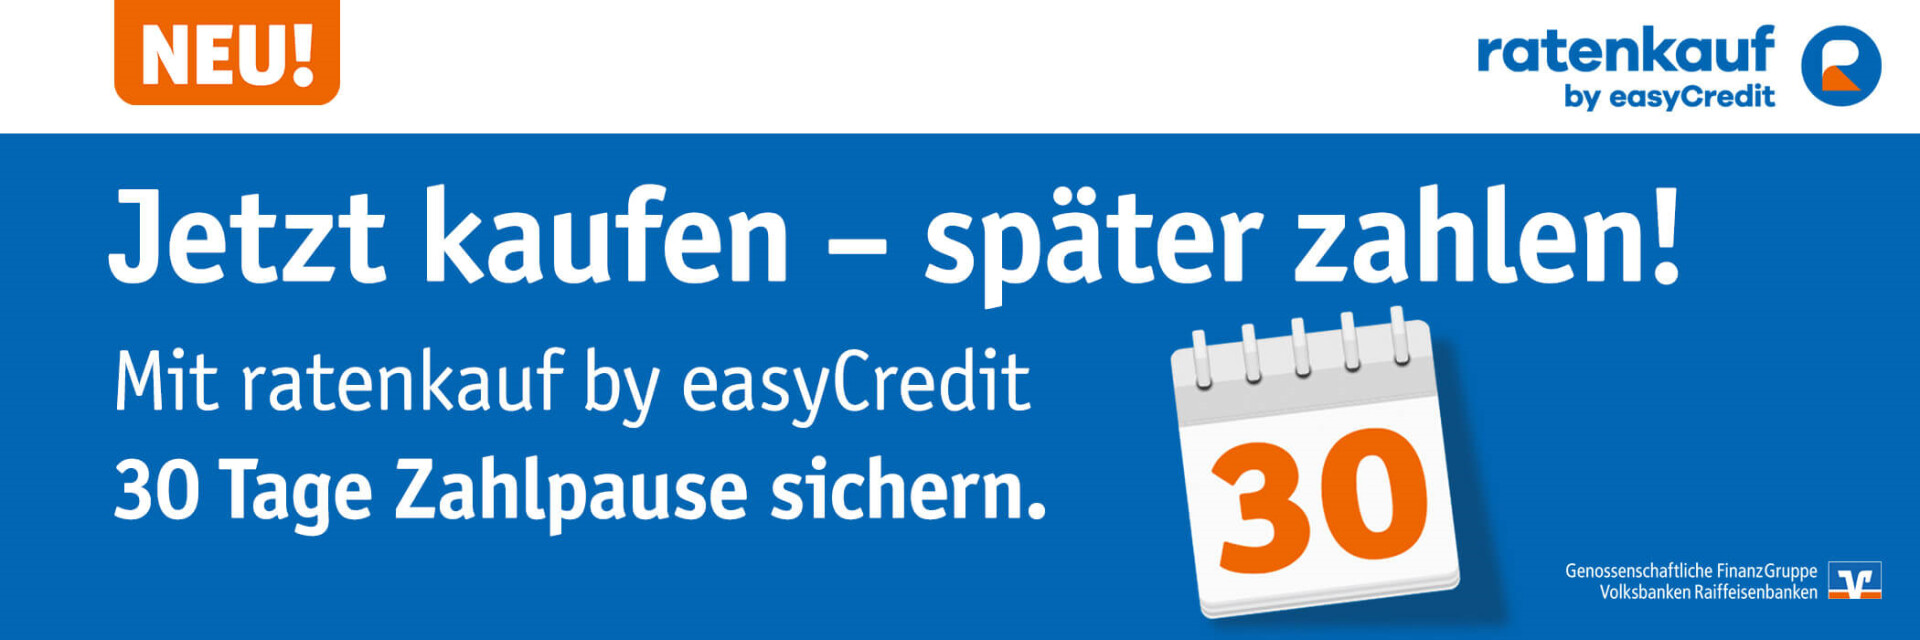 ratenkauf by easyCredit - 30 Tage Zahlpause